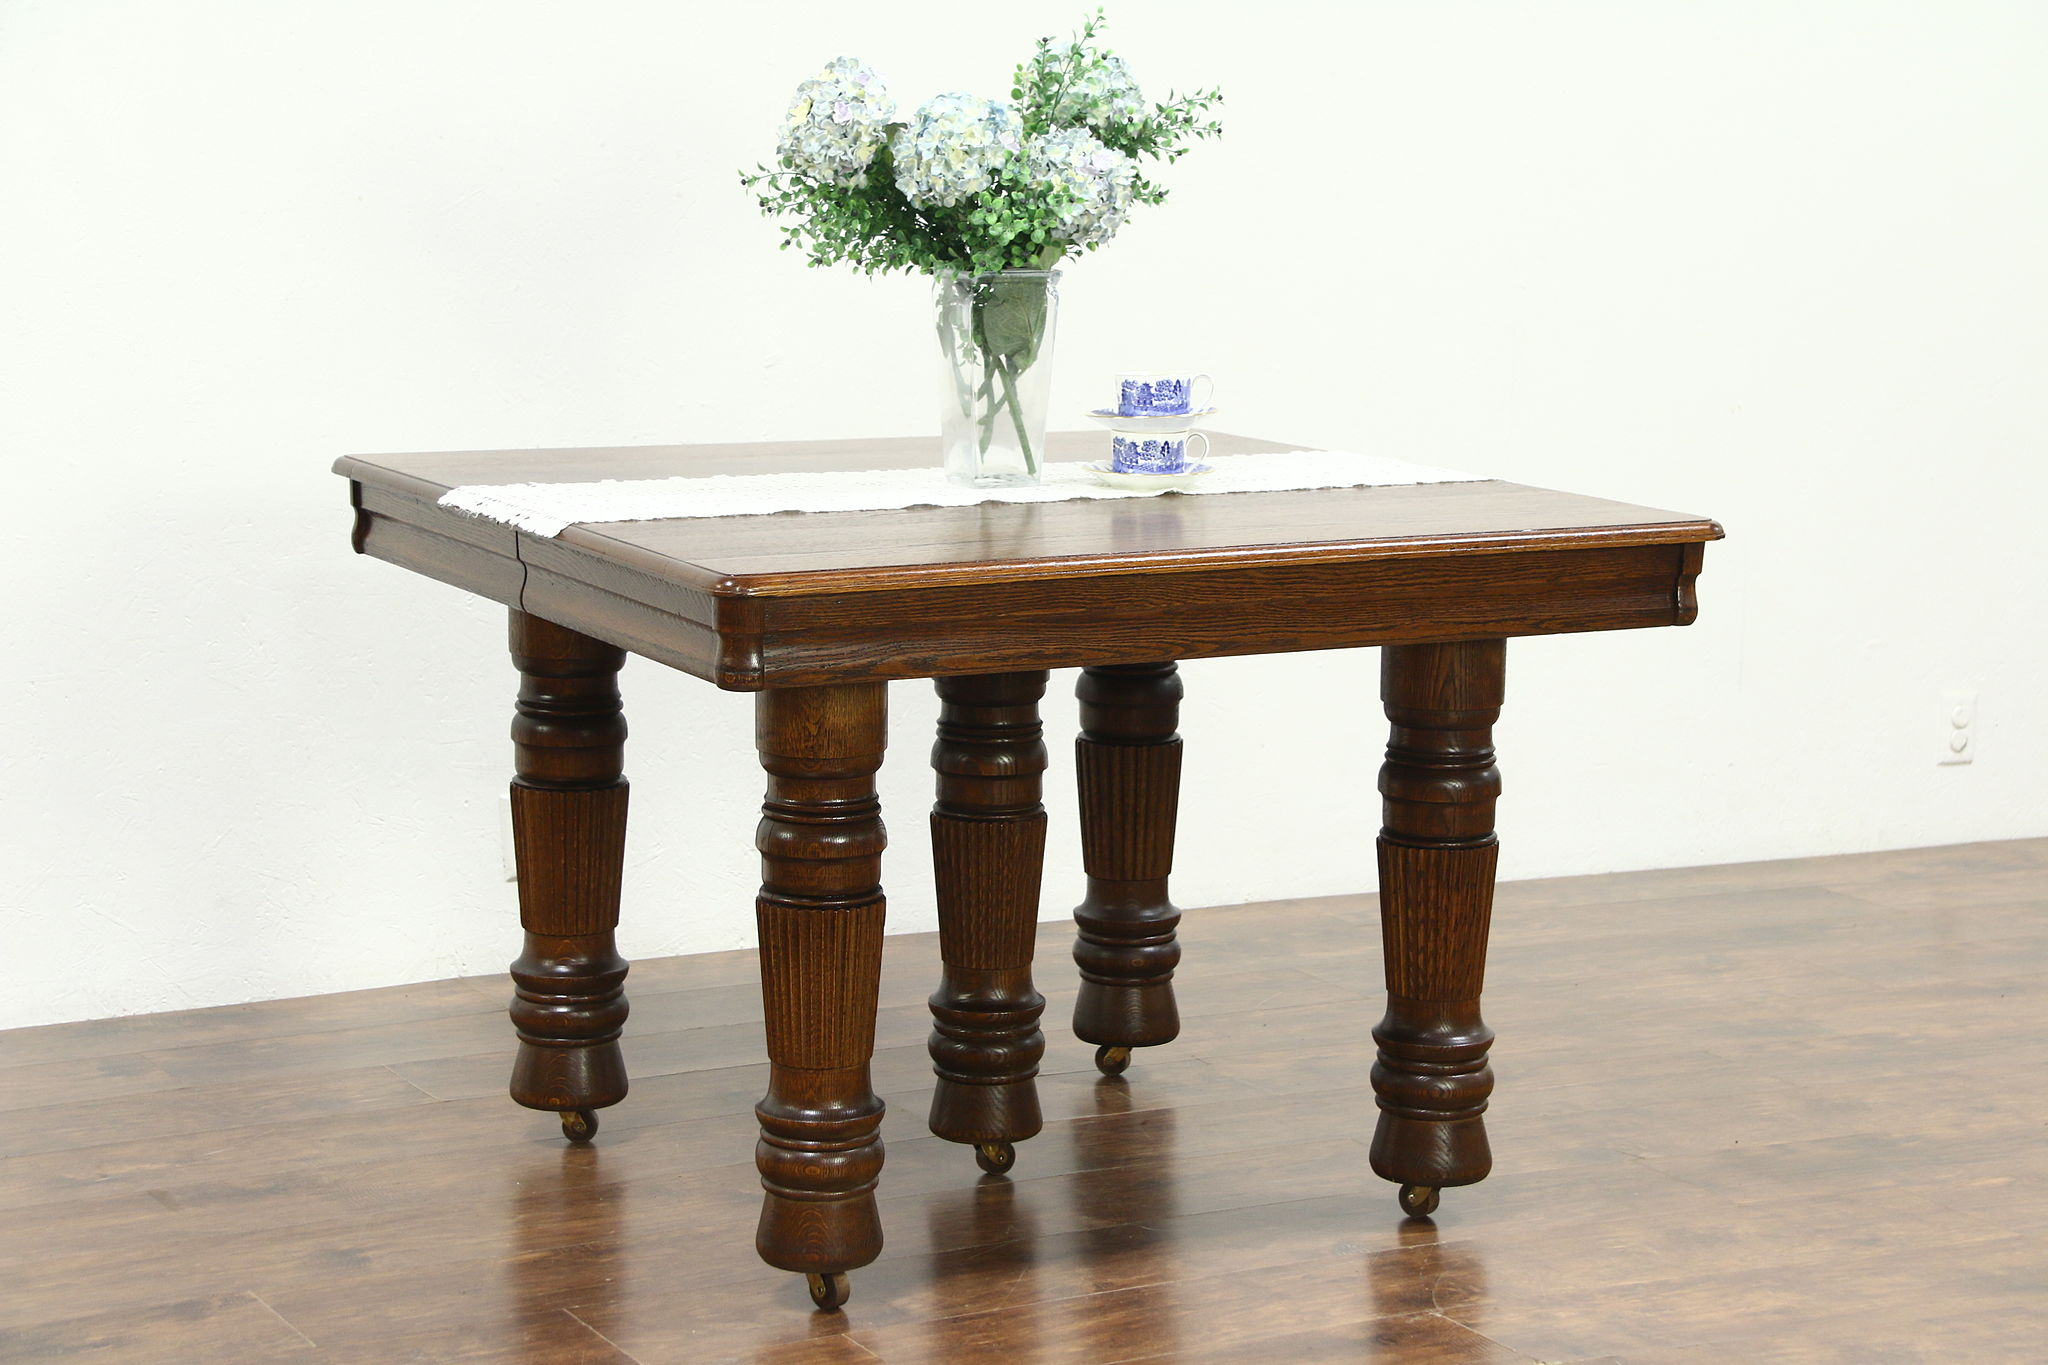 Solid Oak Square Antique 5 Leg Dining Table, 6 Leaves, Extends 10\' 8\